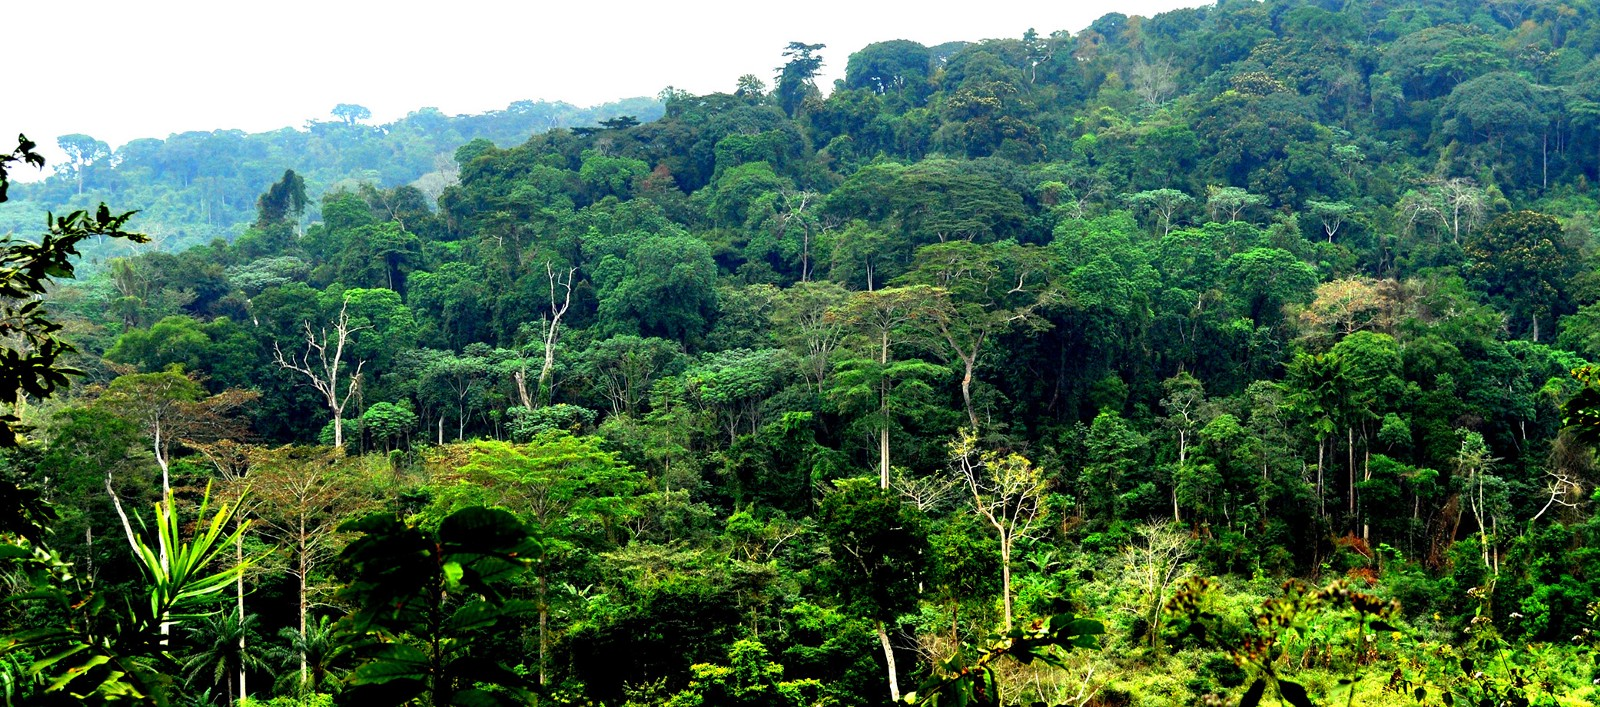 APA Project douses tensions in Congo Basin rainforests - APA |Congo Basin